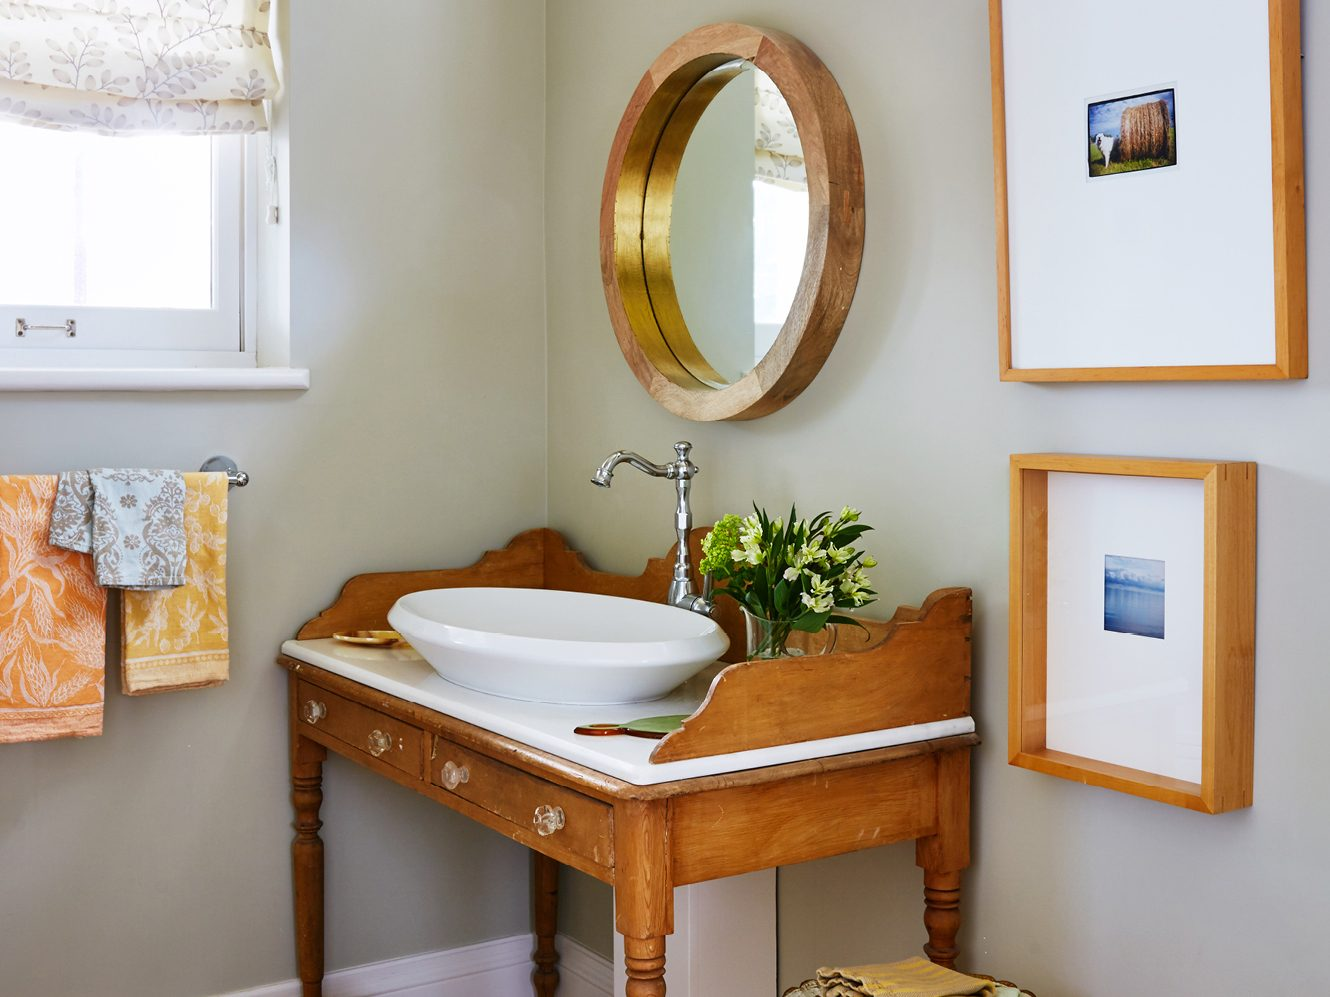 Thrifty decorating tip #3: Repurpose an antique